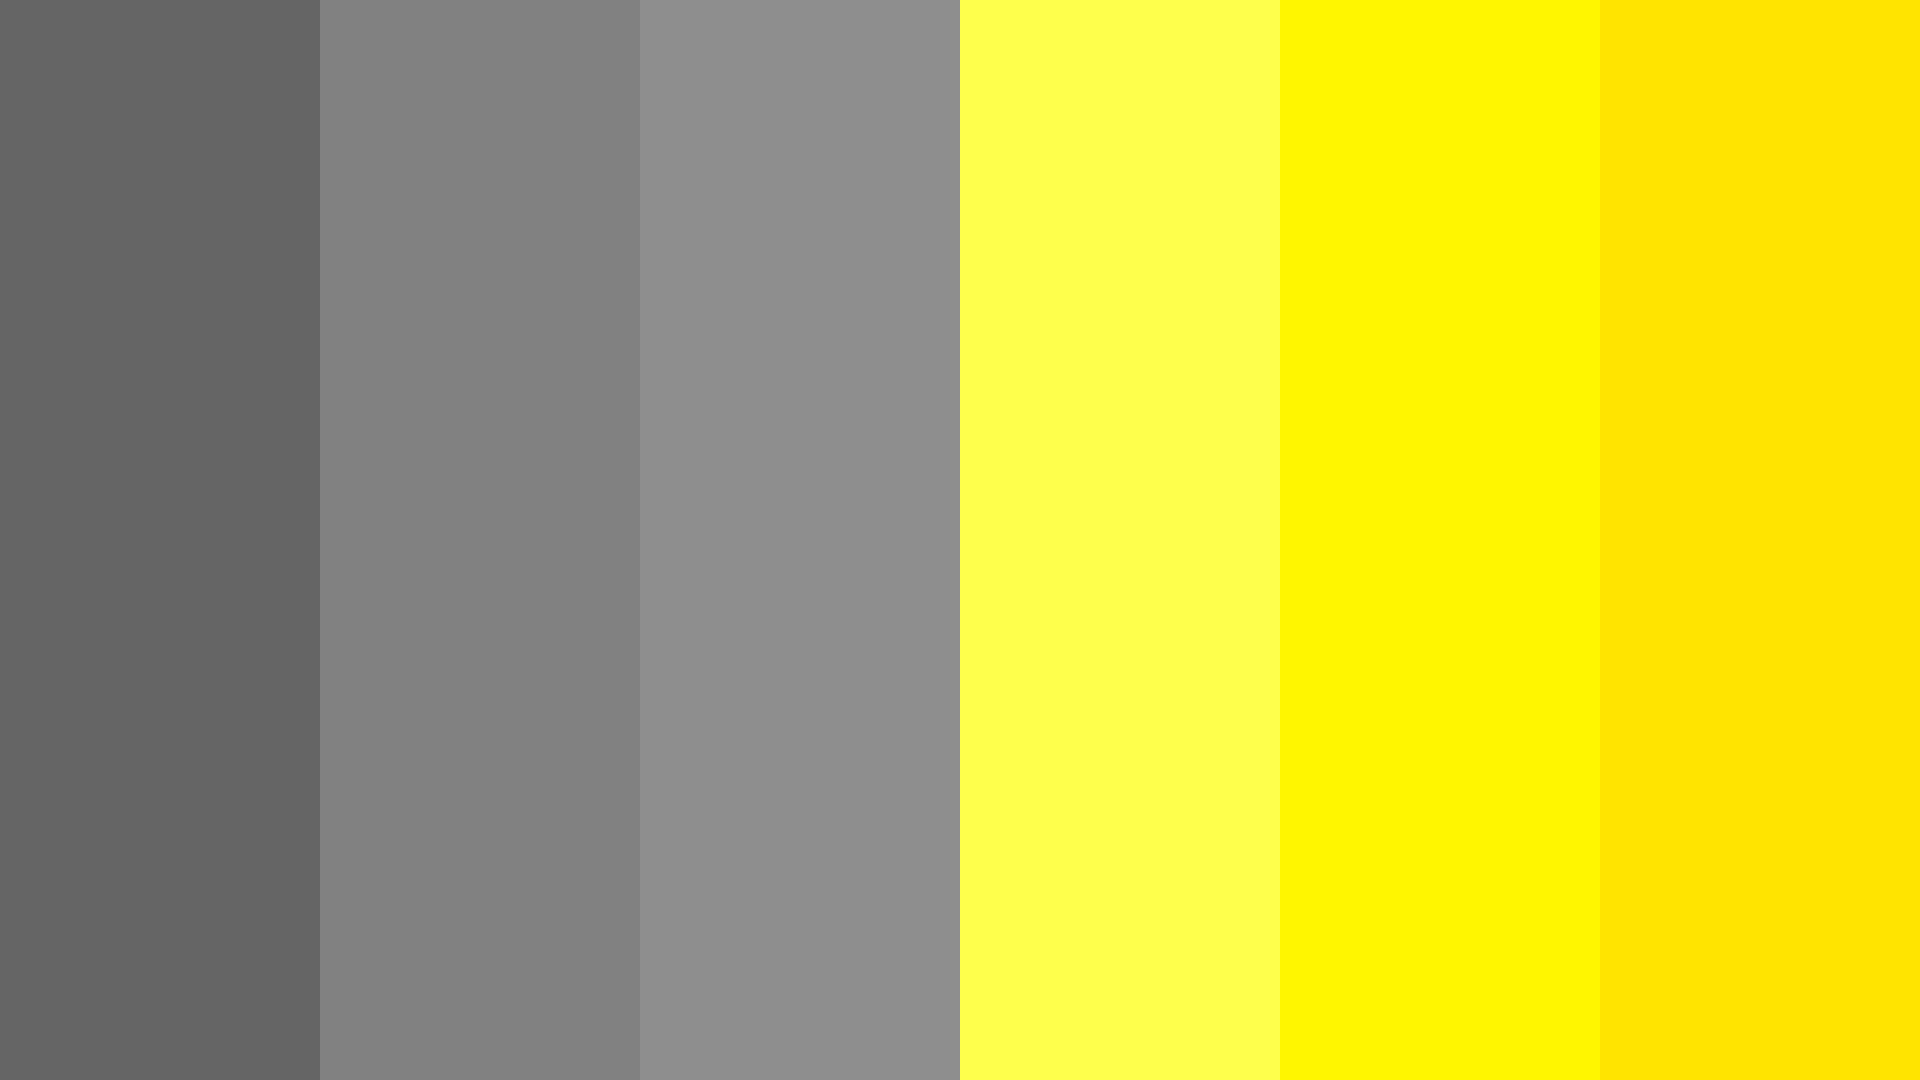 Gray With Bright Yellow Color Palette